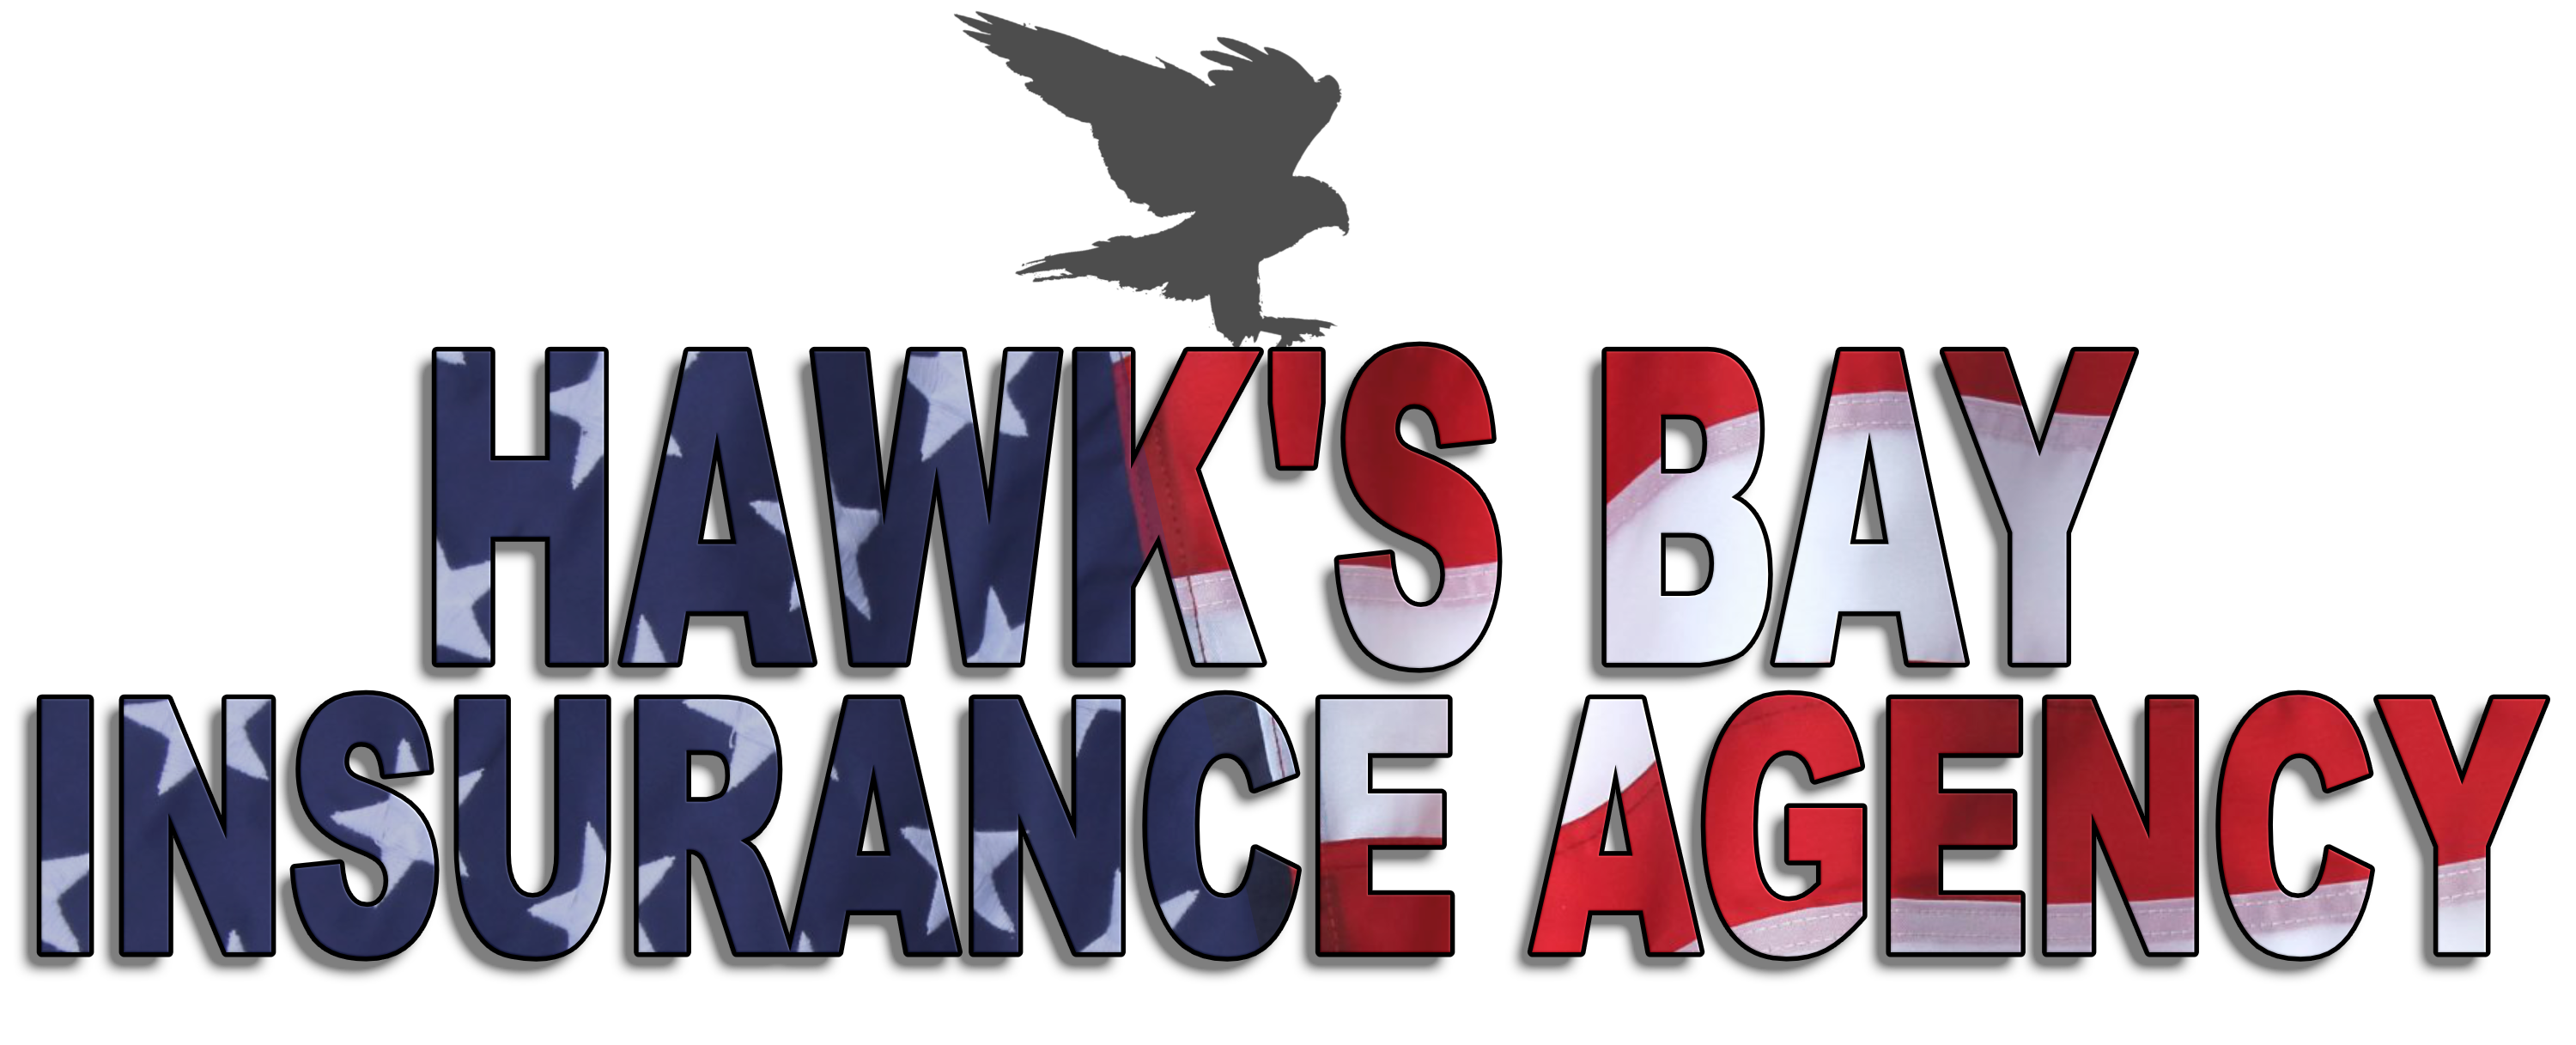 hawks-bay-insurance-agency